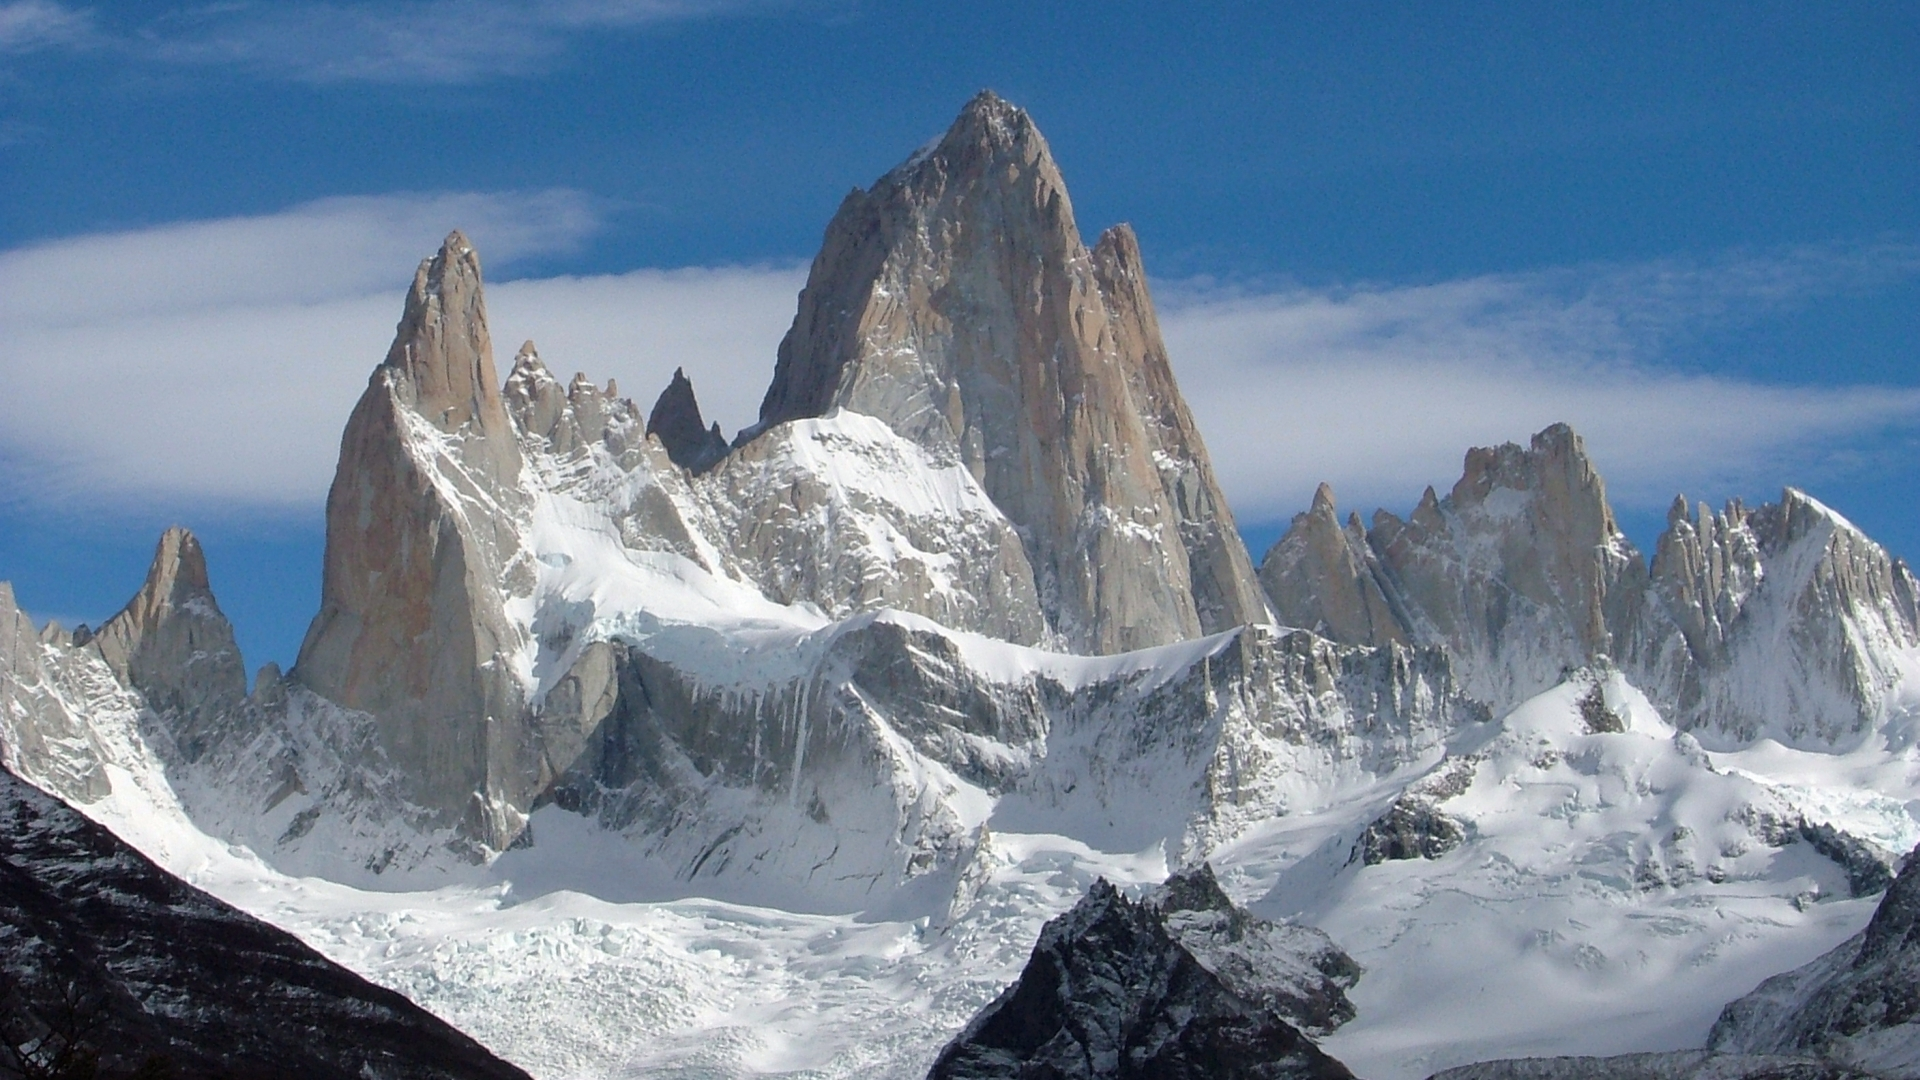 Mount Fitzroy Full Hd Wallpaper And Background Image